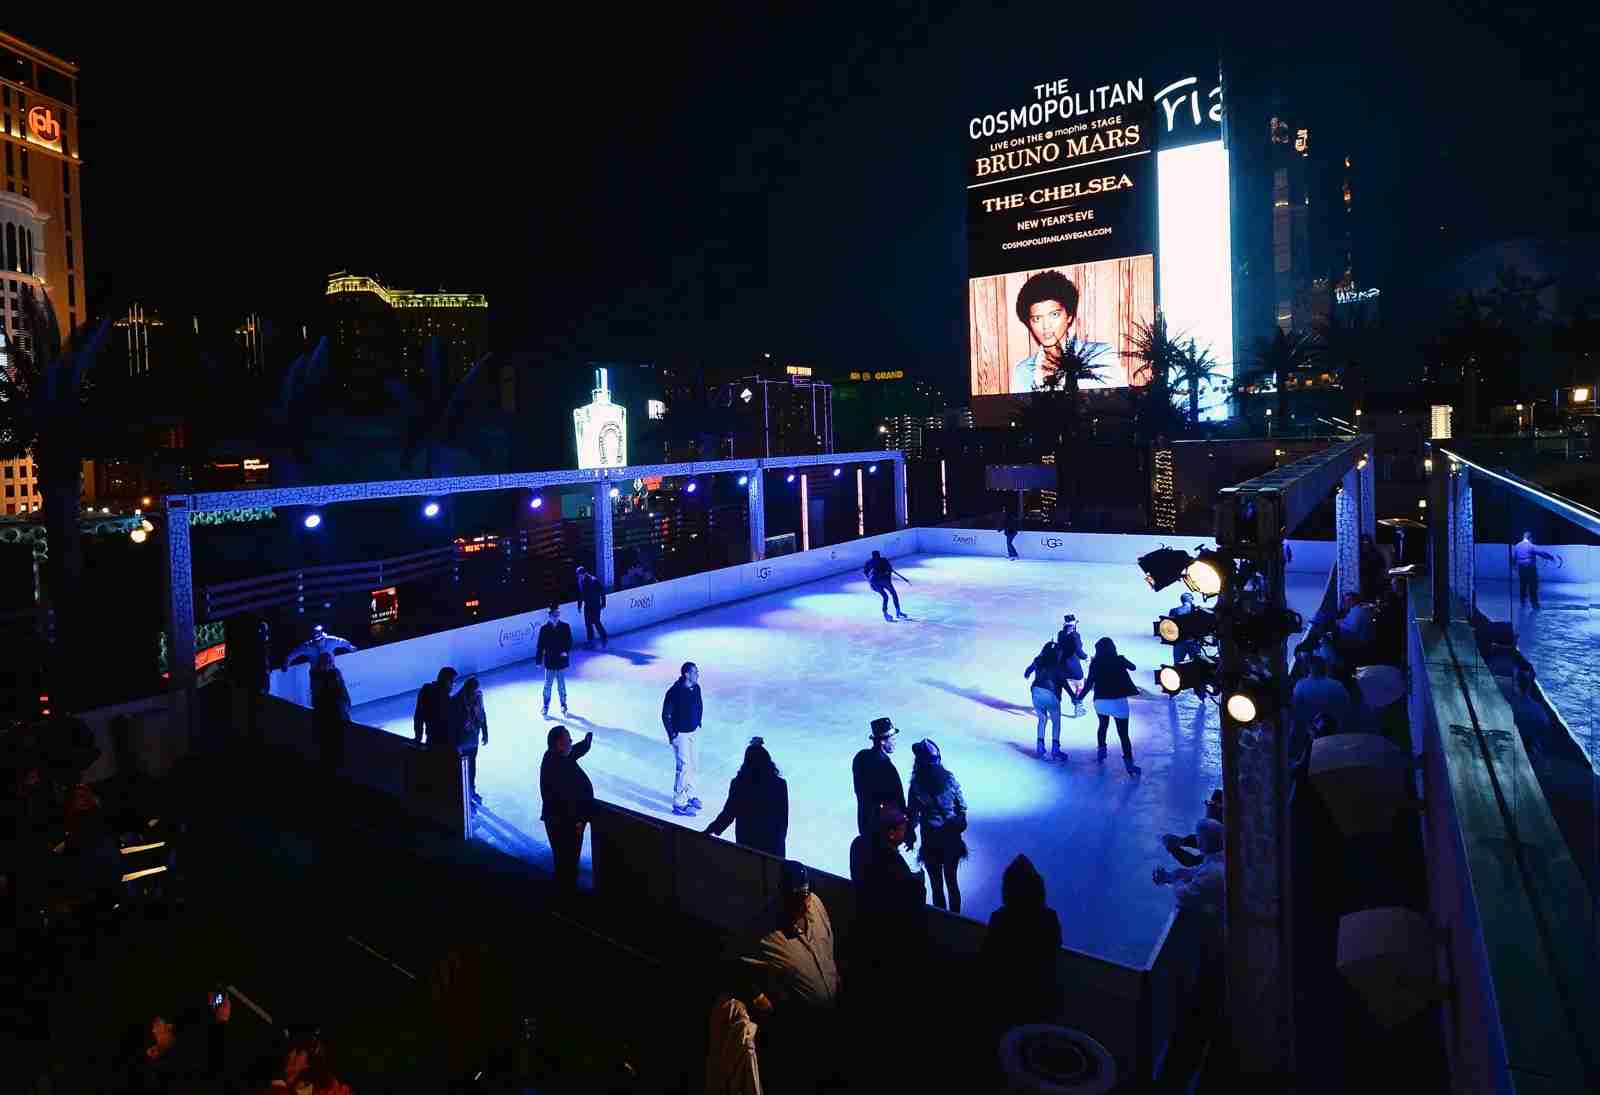 The Ice Rink at the Cosmopolitan Hotel in Las Vegas. (Photo by Ethan Miller/WireImage/Getty Images)